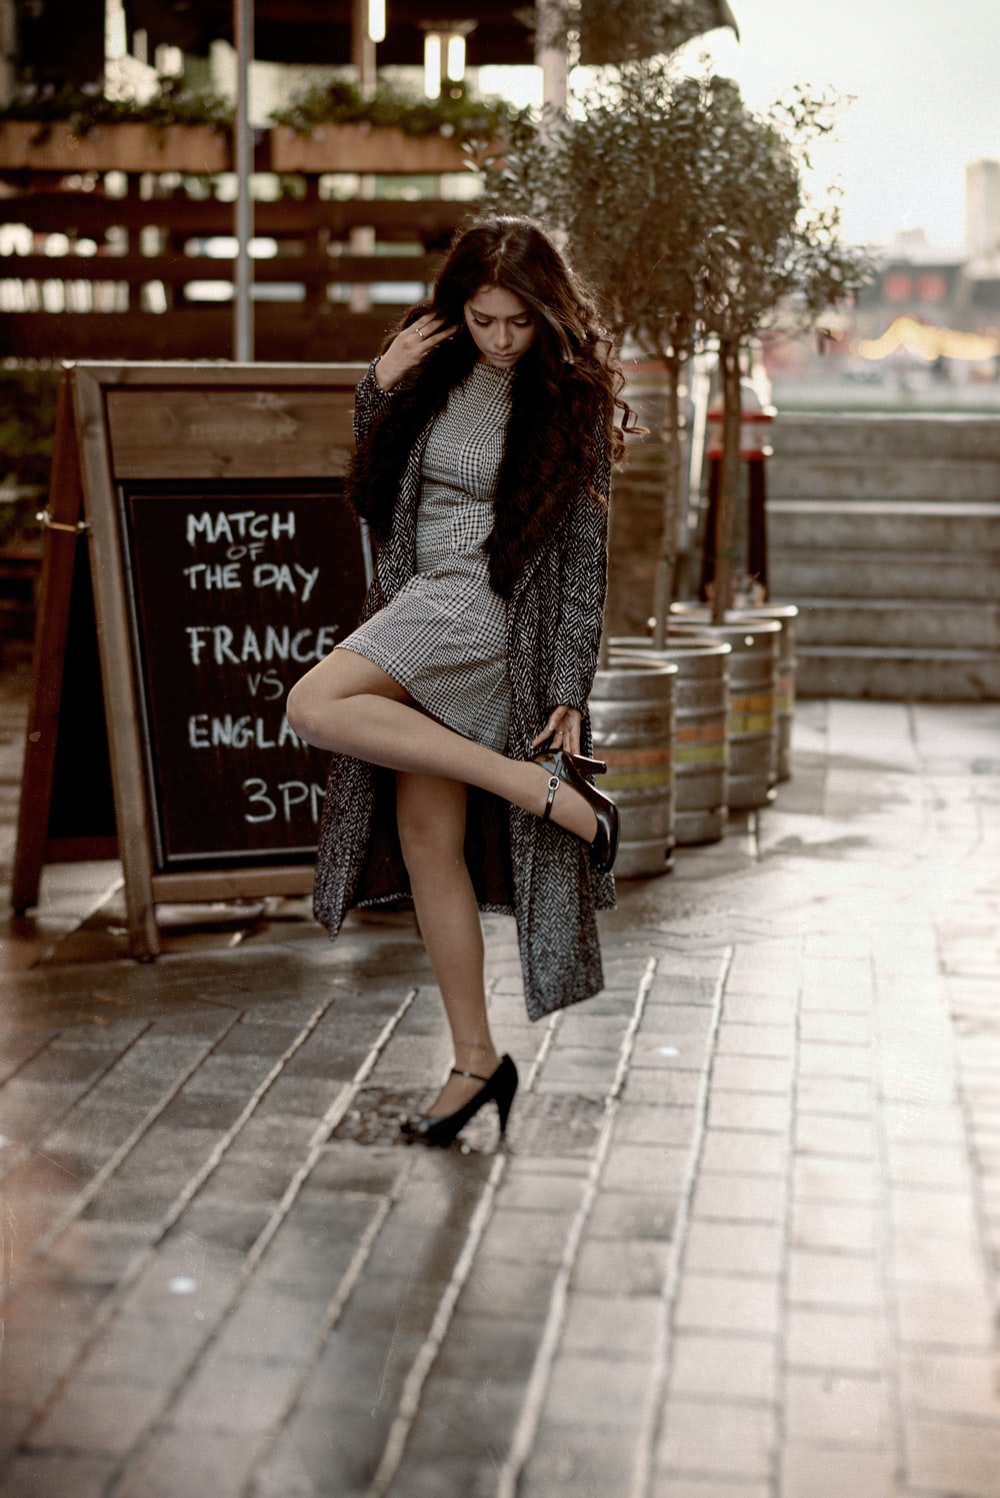 woman touching her left heel wearing stiletto shoes